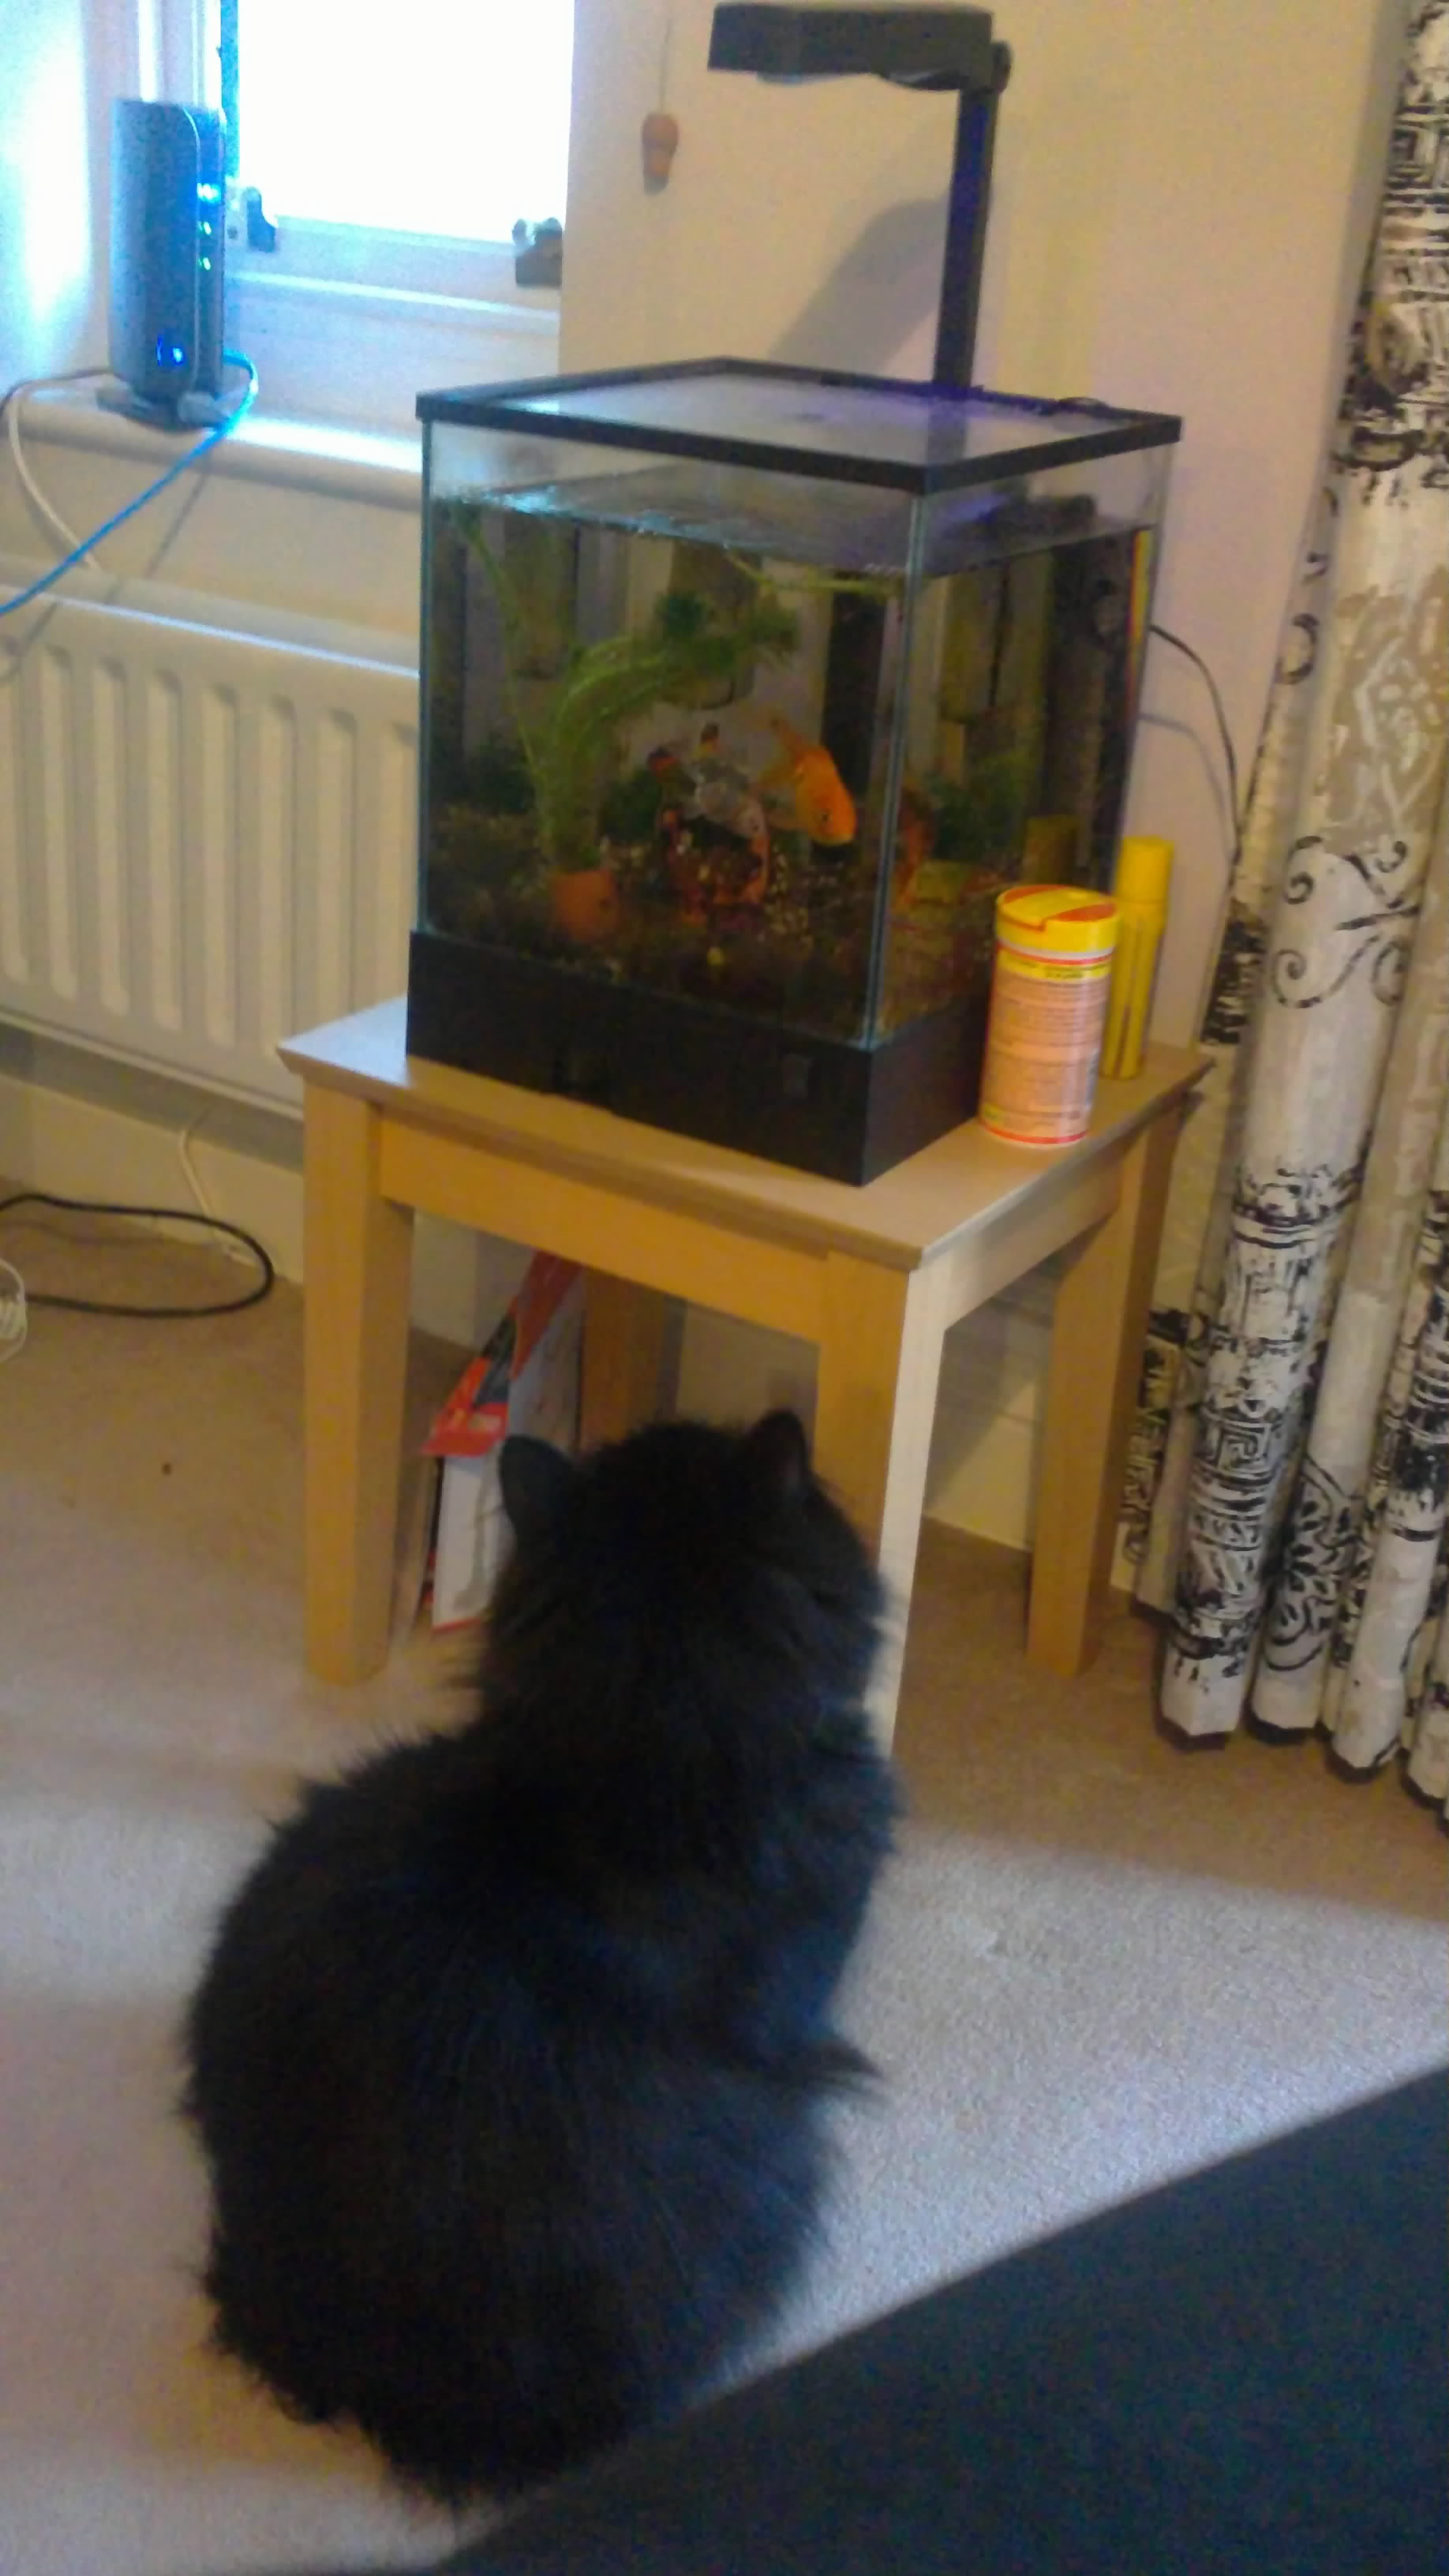 Cedric watching fish